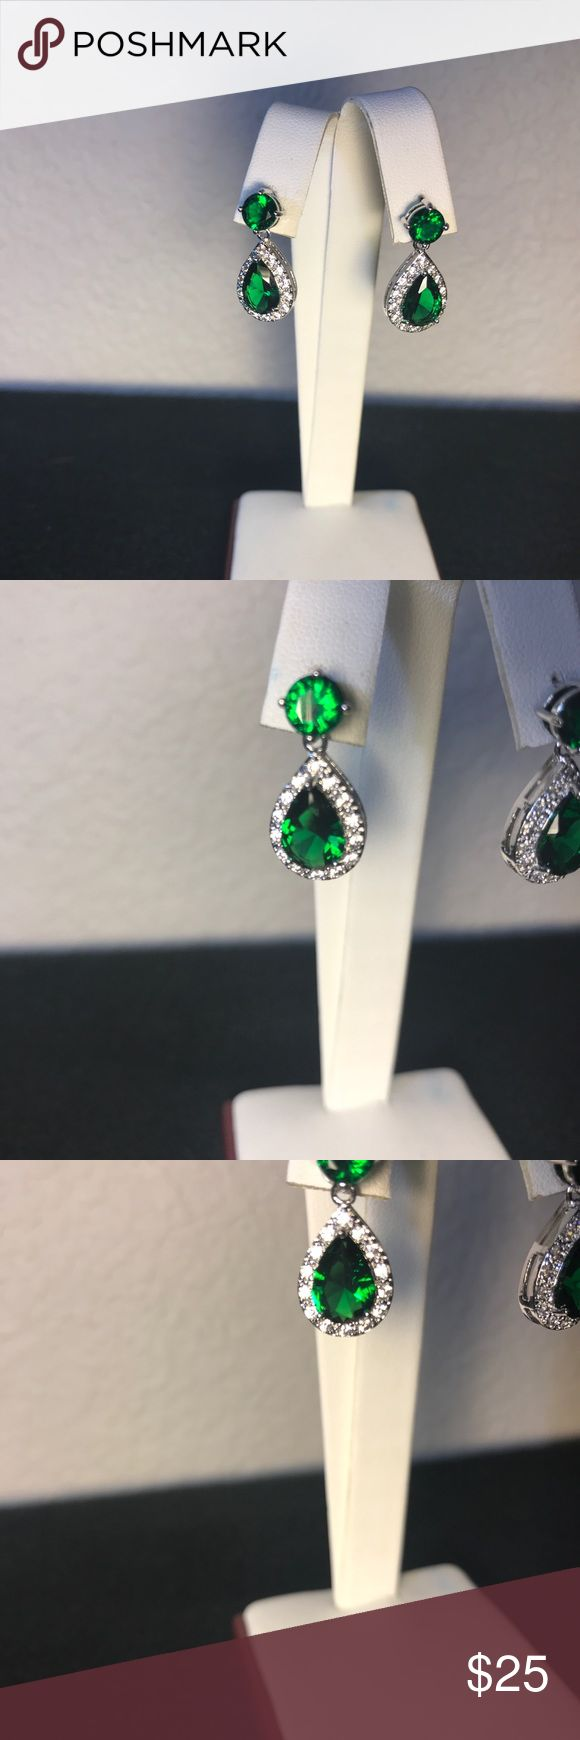 NWOT AAA Grade Green&White Zircon Platinum plated Absolutely stunning round and pear shape genuine Zircon. Plated with platinum, these earrings look like they cost a fortune! The color and sparkle are just incredible. They will not disappoint. If you, or someone you love is a Sagittarius, this is their birthstone!Zircon a mined from the Earth stone, it's not cubic zirconia, which is a fake diamond. (The two are often confused.) you will love these! Jewelry Earrings